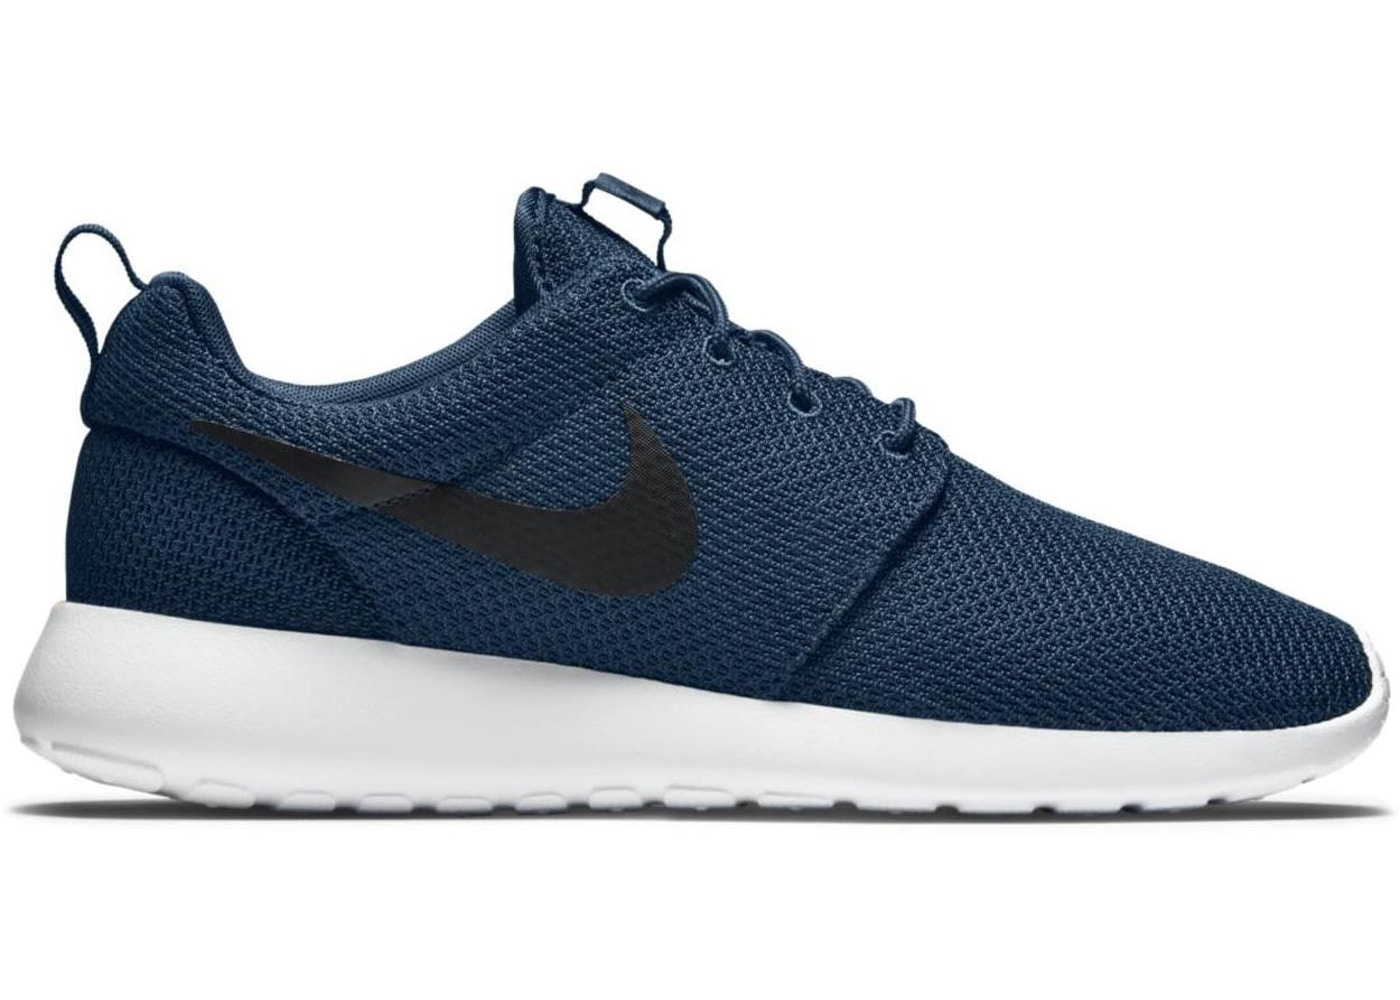 timeless design e027c 72e53 Nike Roshe Run Navy Black White